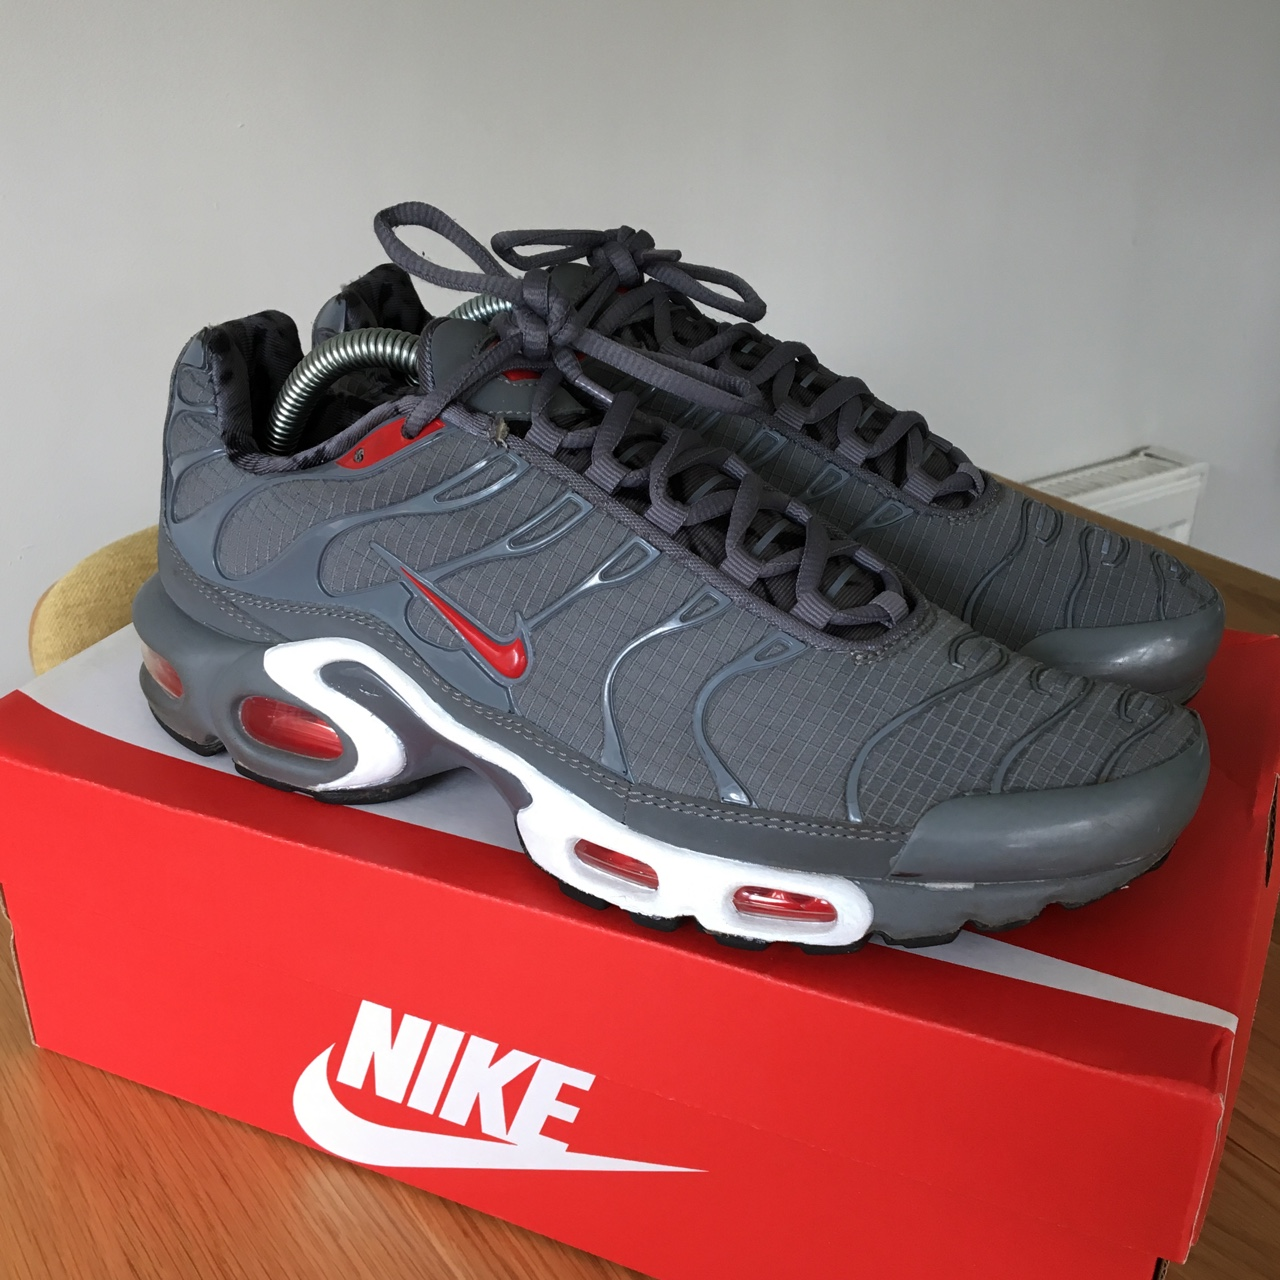 sports shoes 0f14b 9223e Nike air max plus tn grey and white 8/10 - Depop